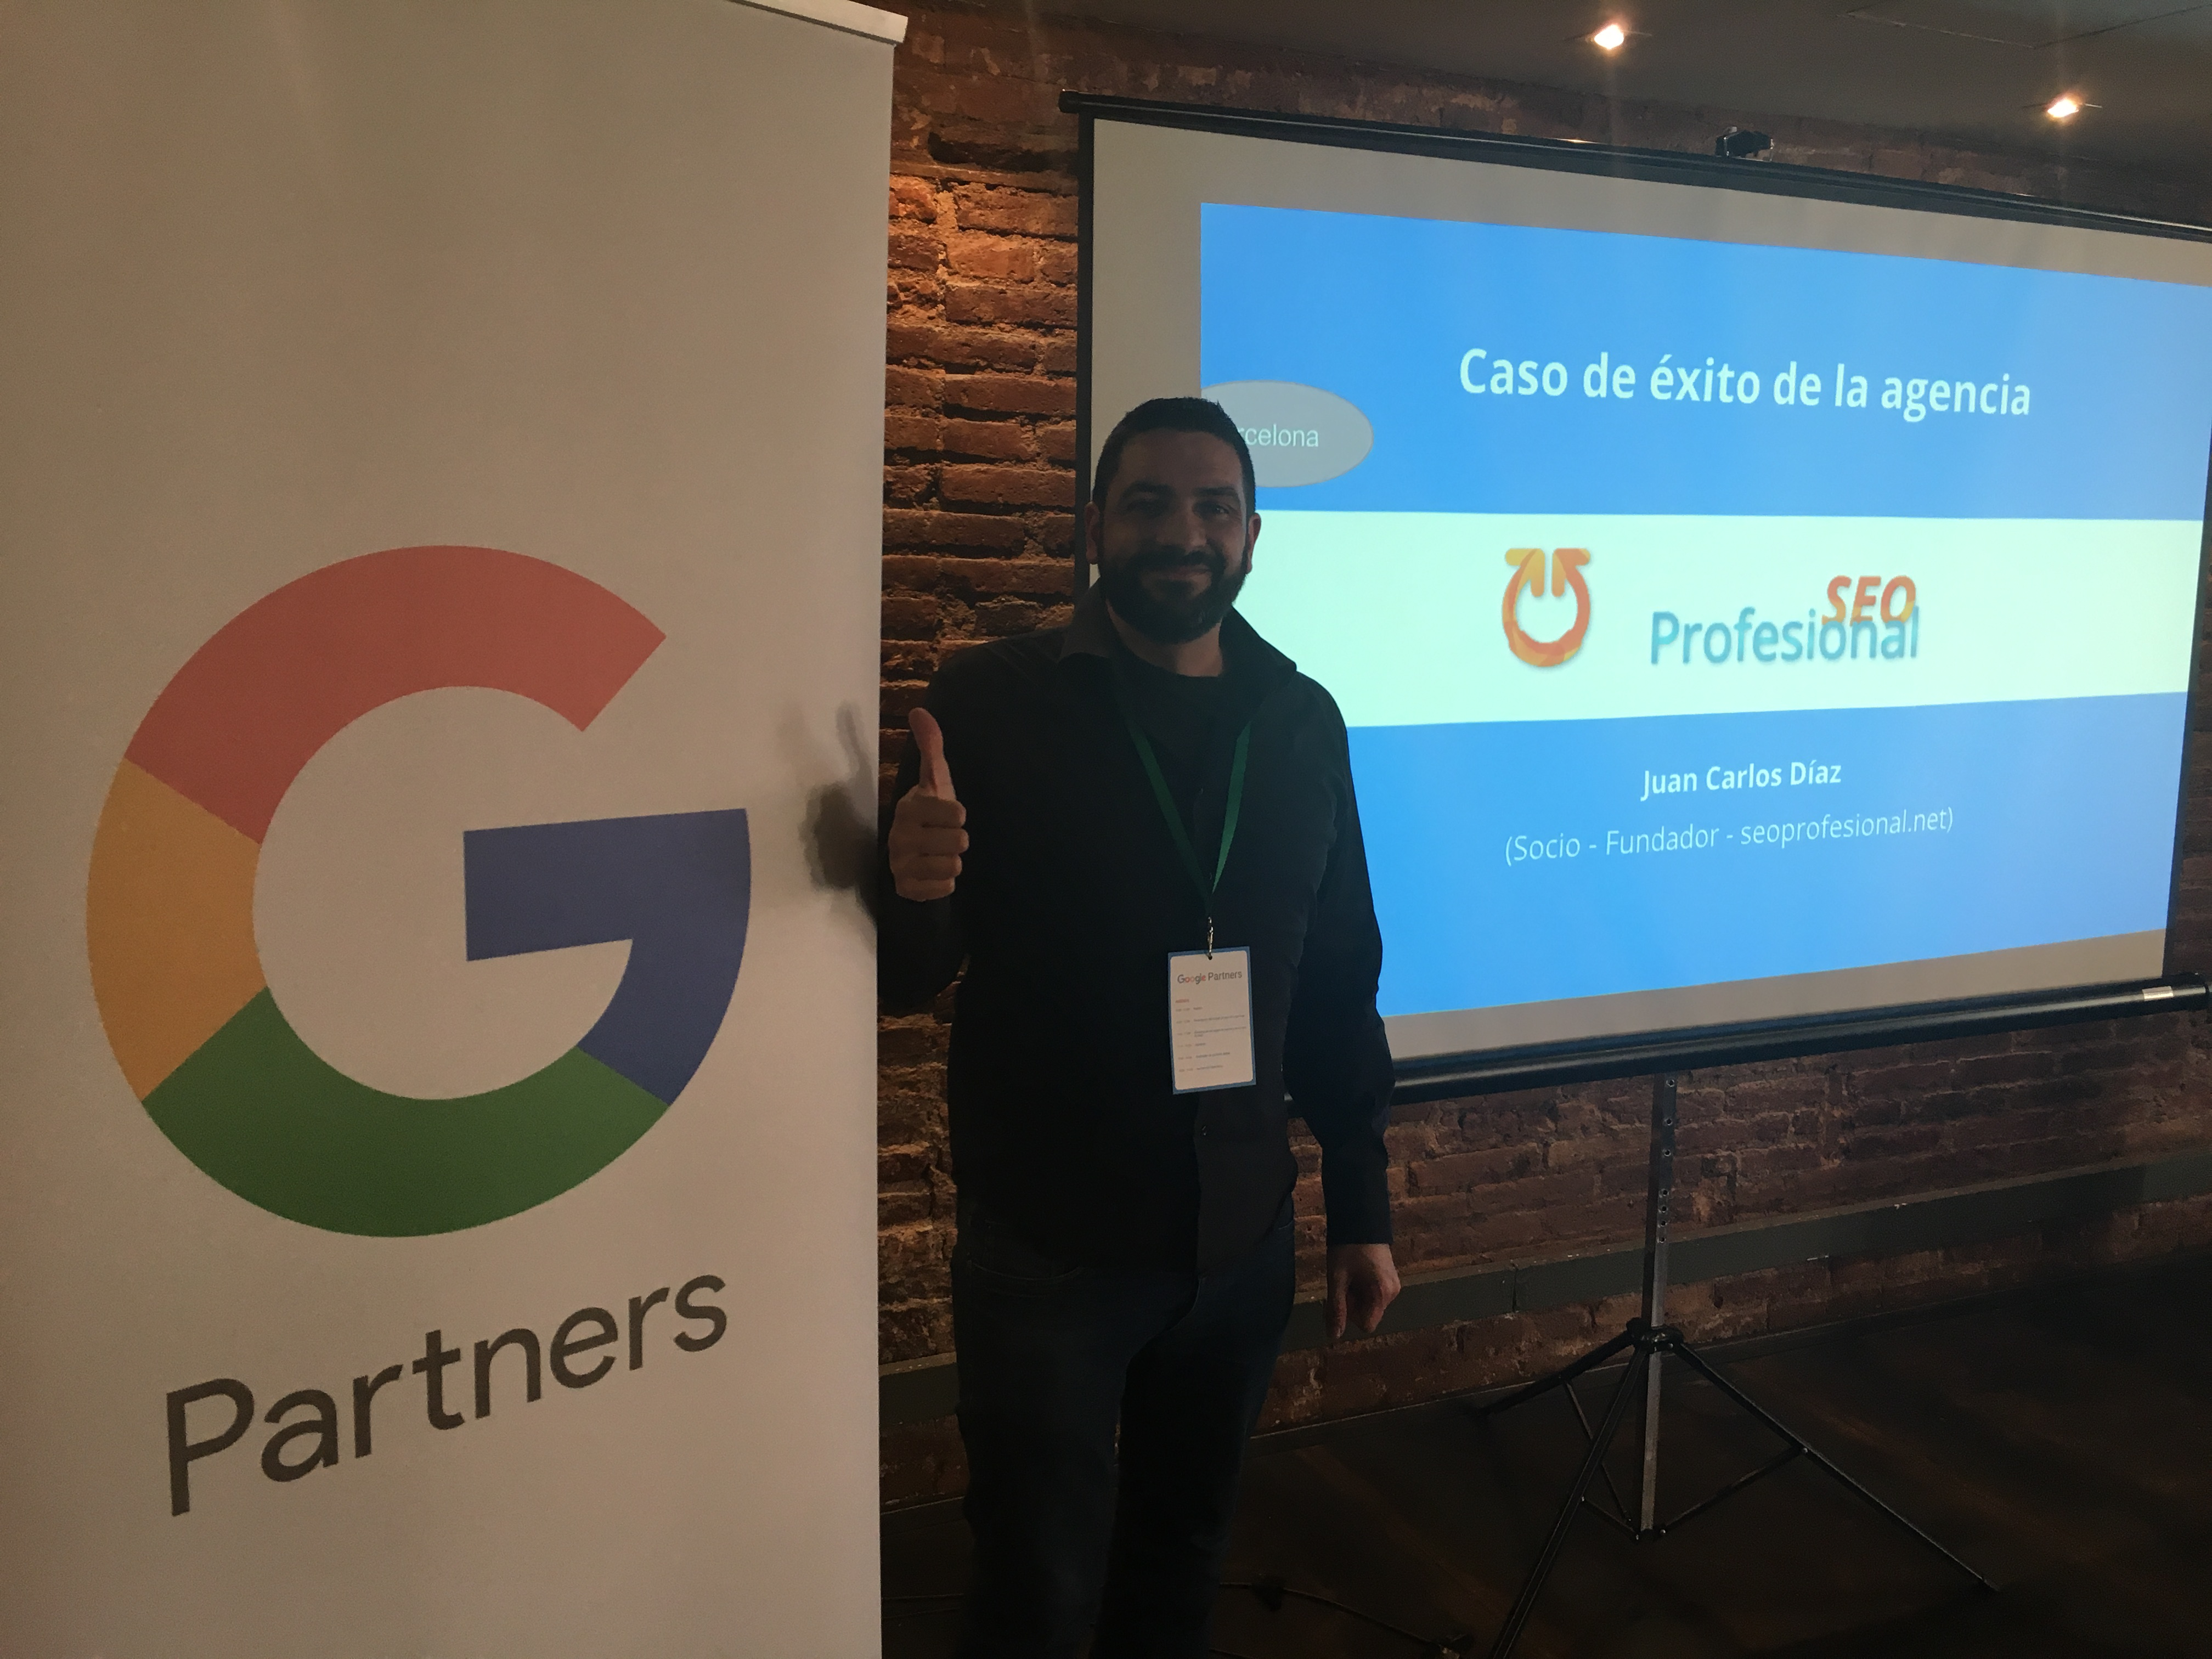 Caso-exito-google-partnes-adwords